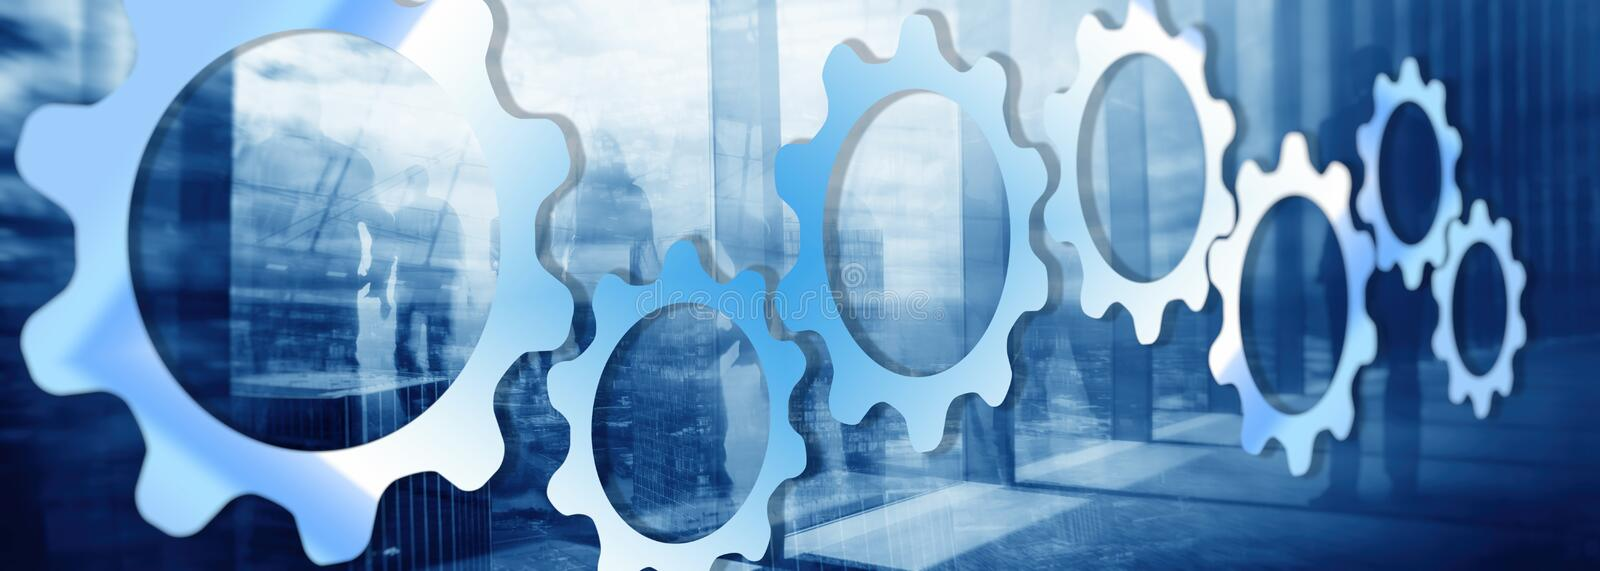 Gears on a blue background. Mixed media Technology background. royalty free stock photos